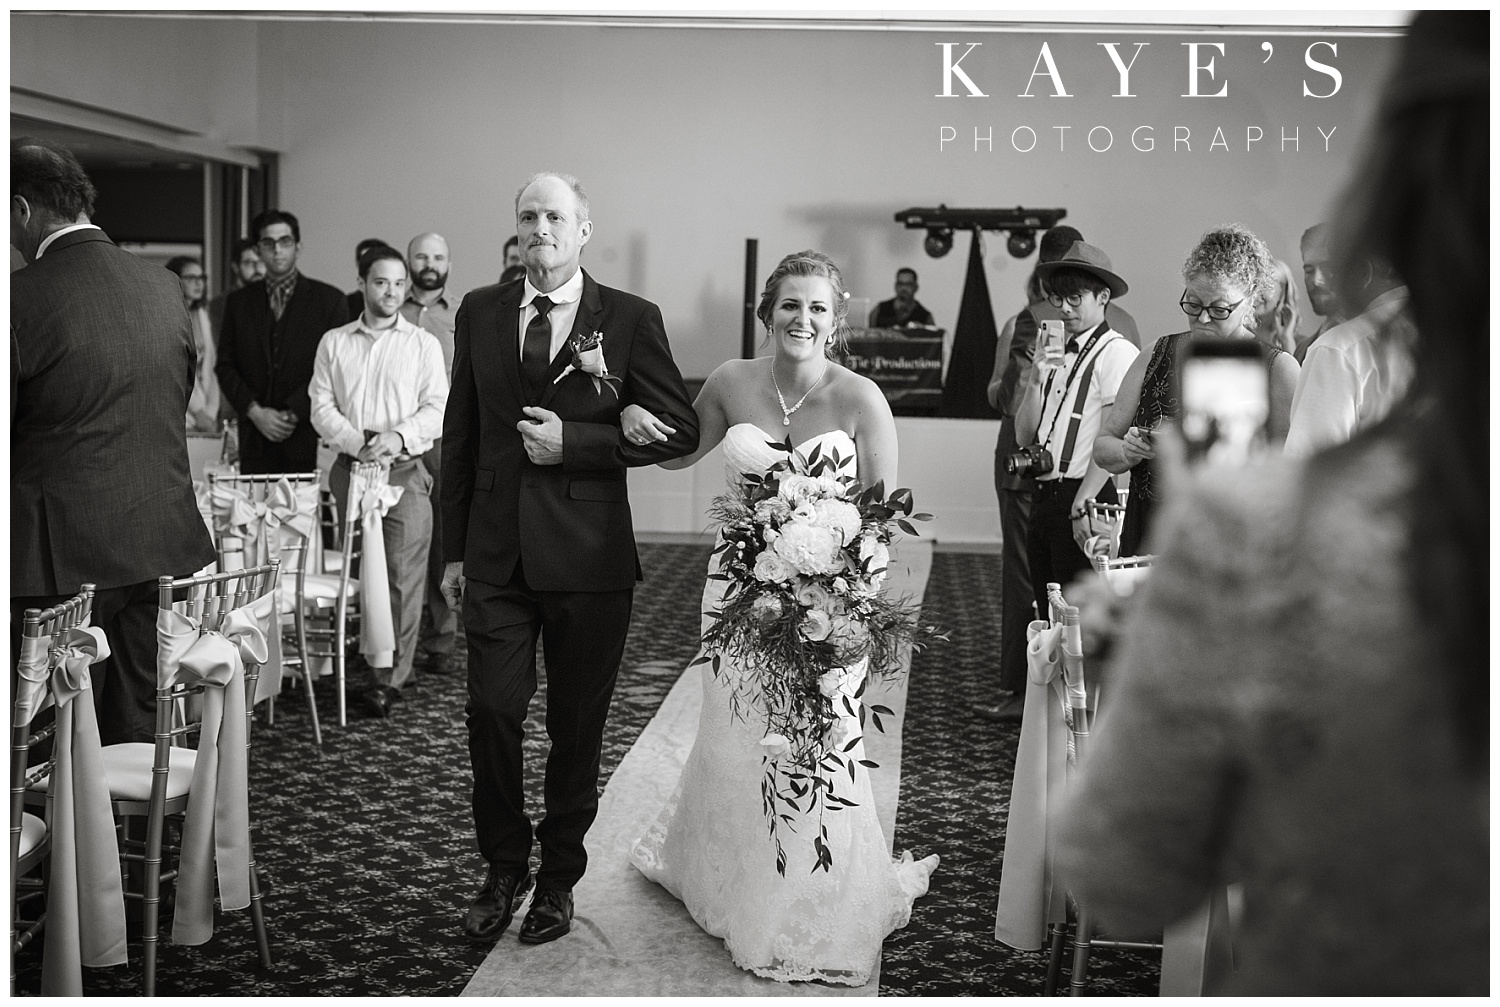 Bride walking up the isle with her father to be wed at crossroads village ceremony!!